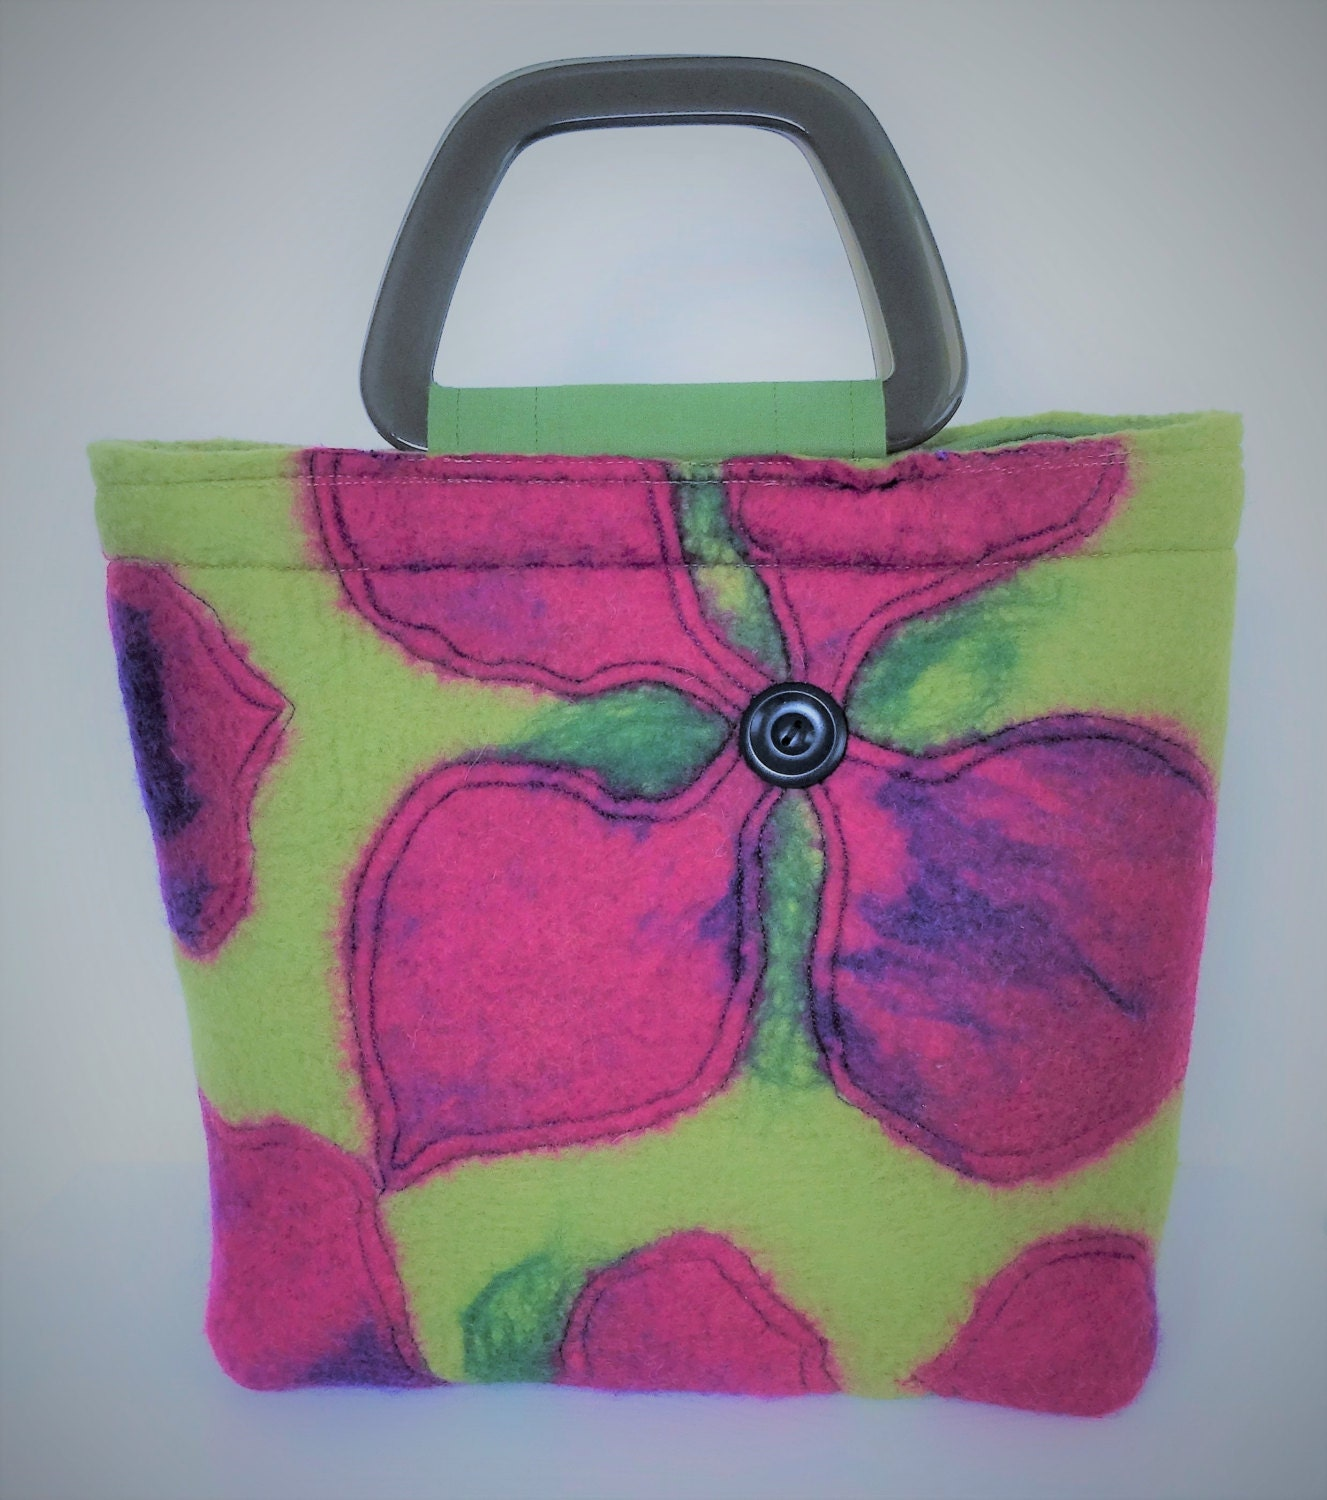 Handfelted handbag in cerise and olive green with stylised Frangipani flowers as decoration. Mediumlarge in size and designer made.